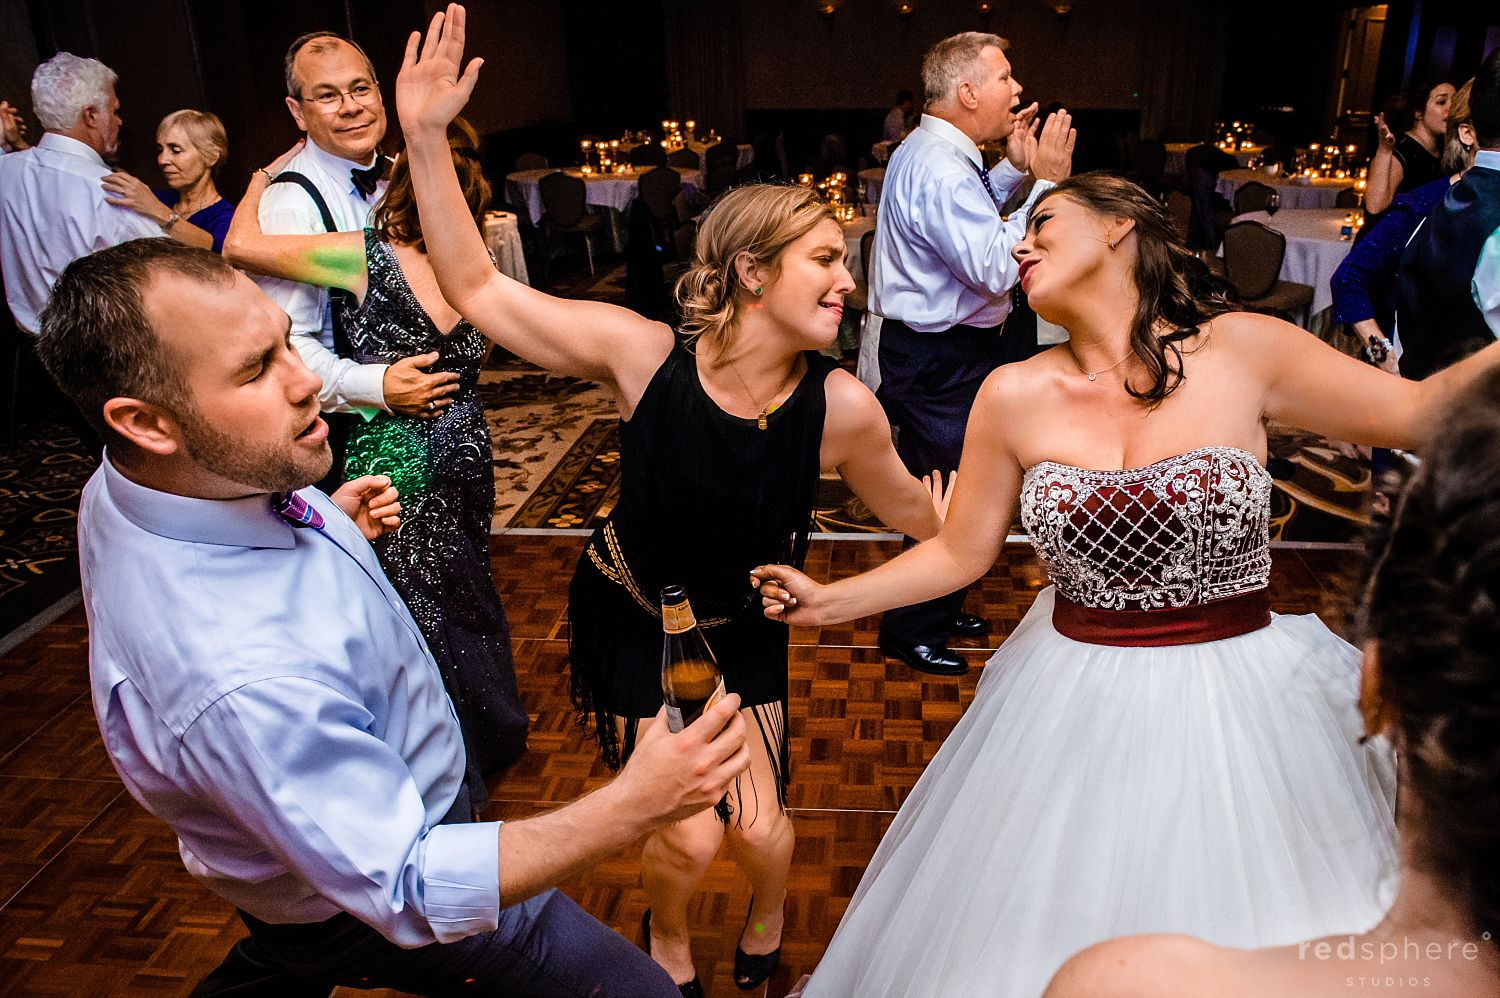 Bride Dancing With Guests at The Inn at Spanish Bay Wedding Reception